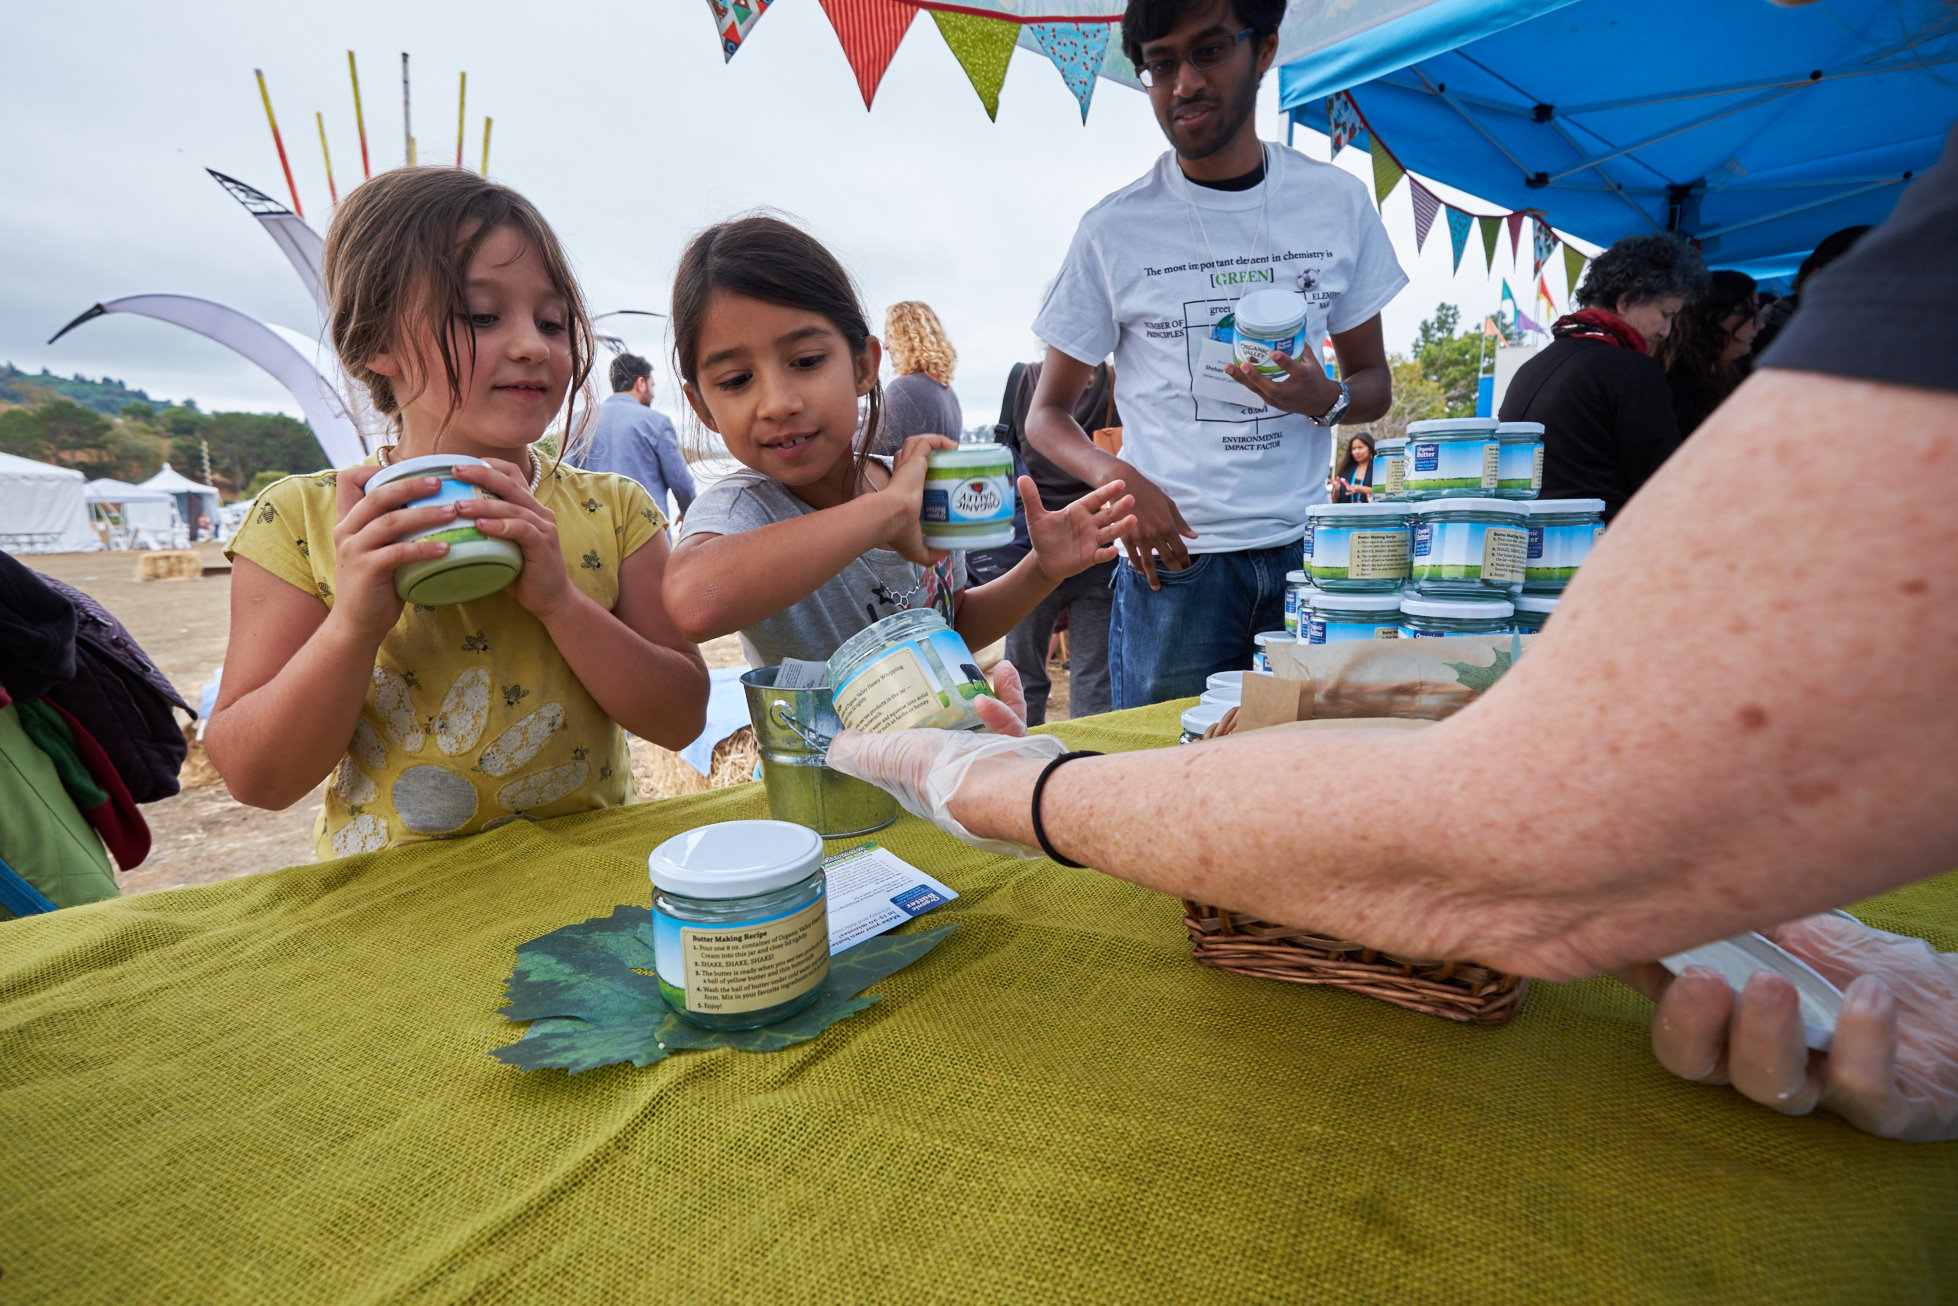 Kids shake up jars of butter from Organic Valley cream at an event.